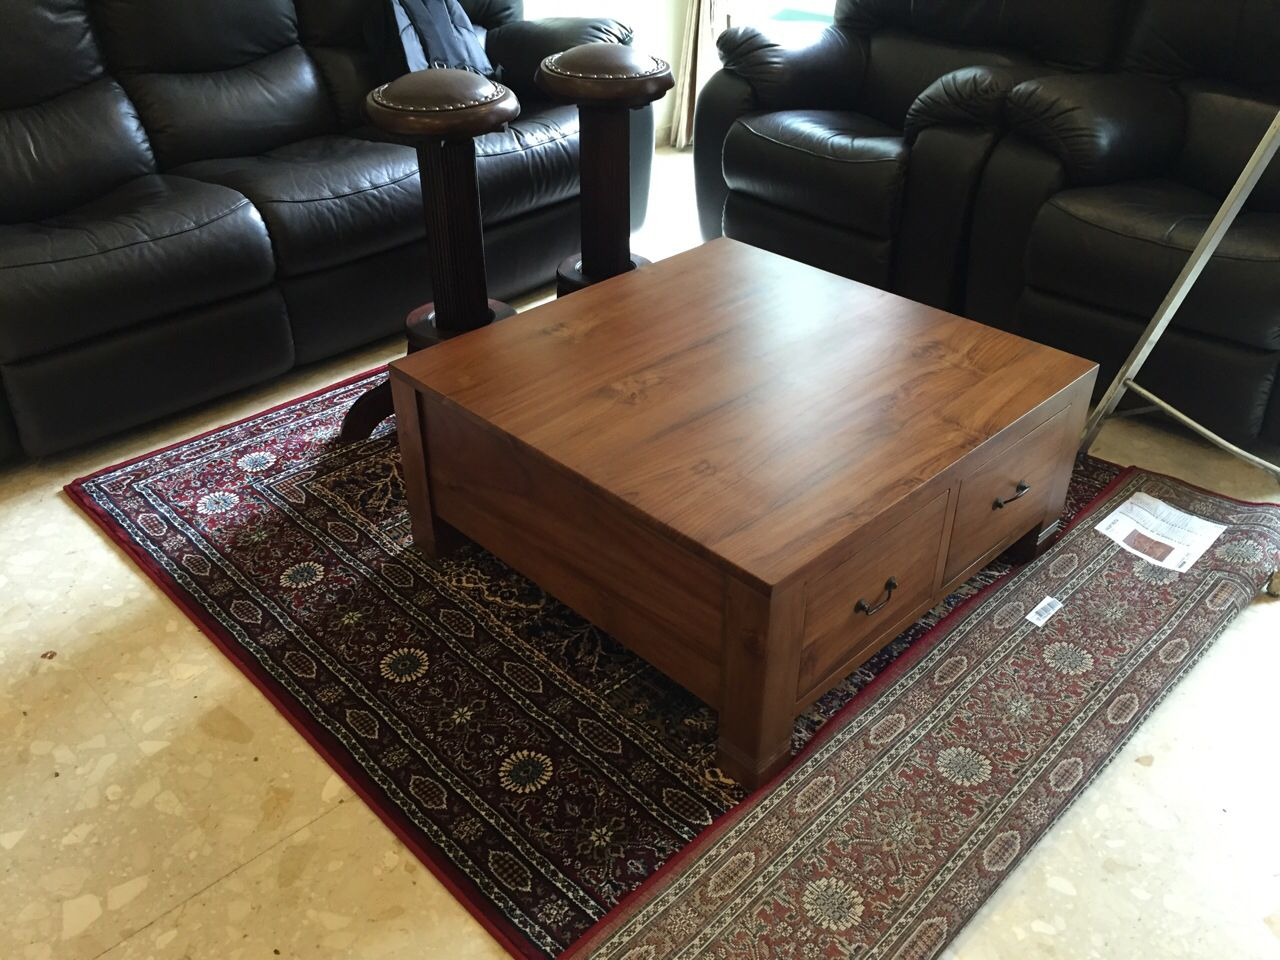 Square teak coffee table with drawers | Square teak coffee ...